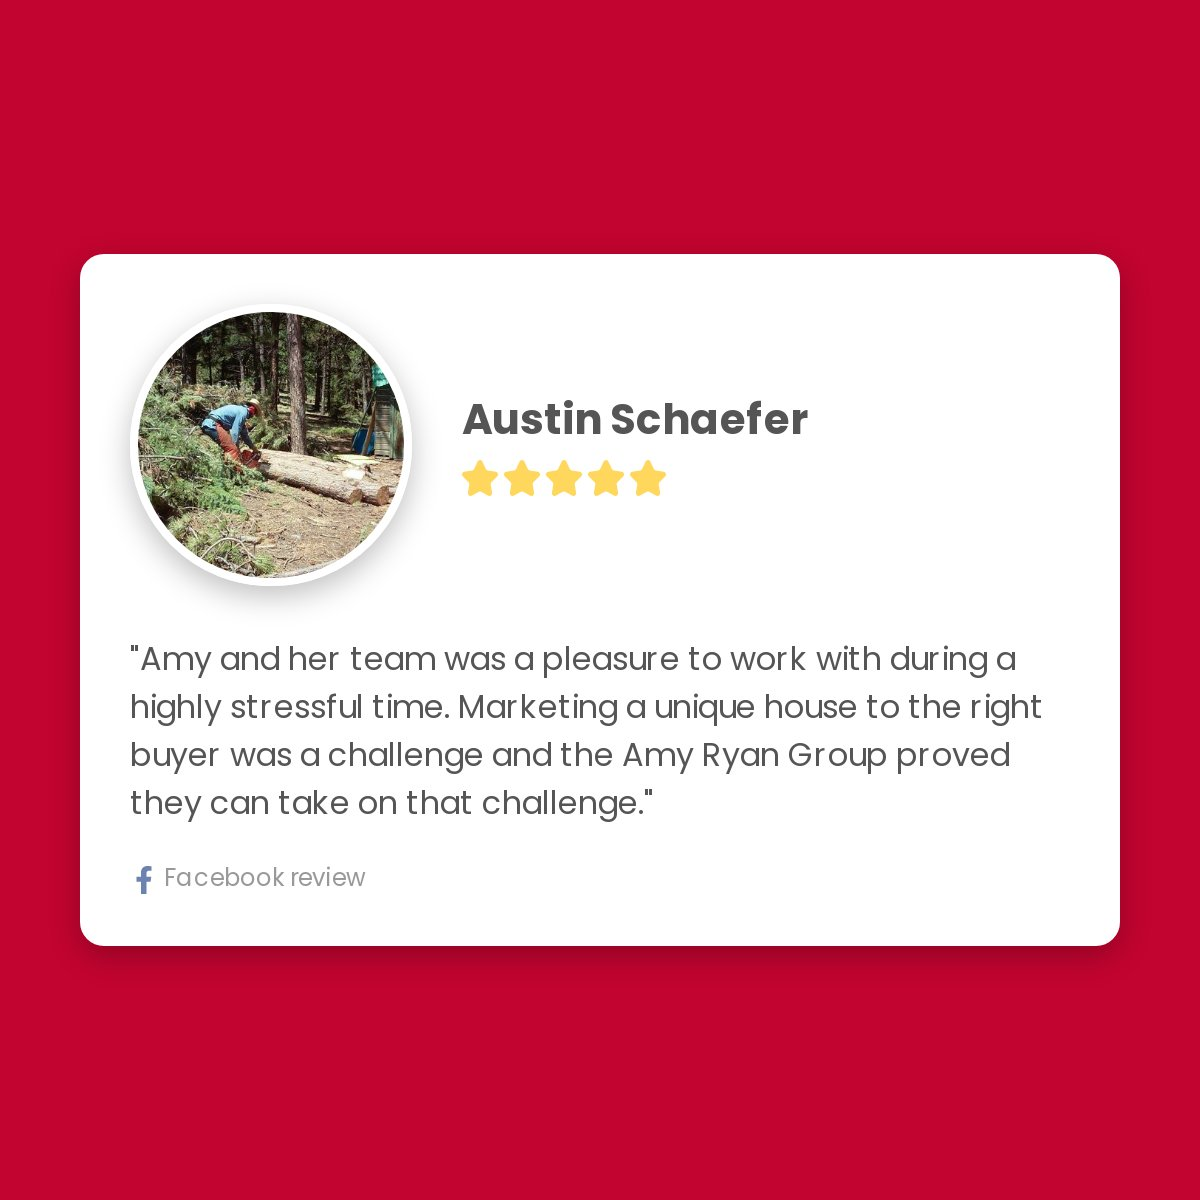 5 Star Review from Austin Schaefer for Amy Ryan Group: Amy and her team was a pleasure to work with during a highly stressful time. Marketing a unique house to the right buyer was a challenge and the Amy Ryan Group proved they can take on that challenge. pic.twitter.com/bpWKBUavGt